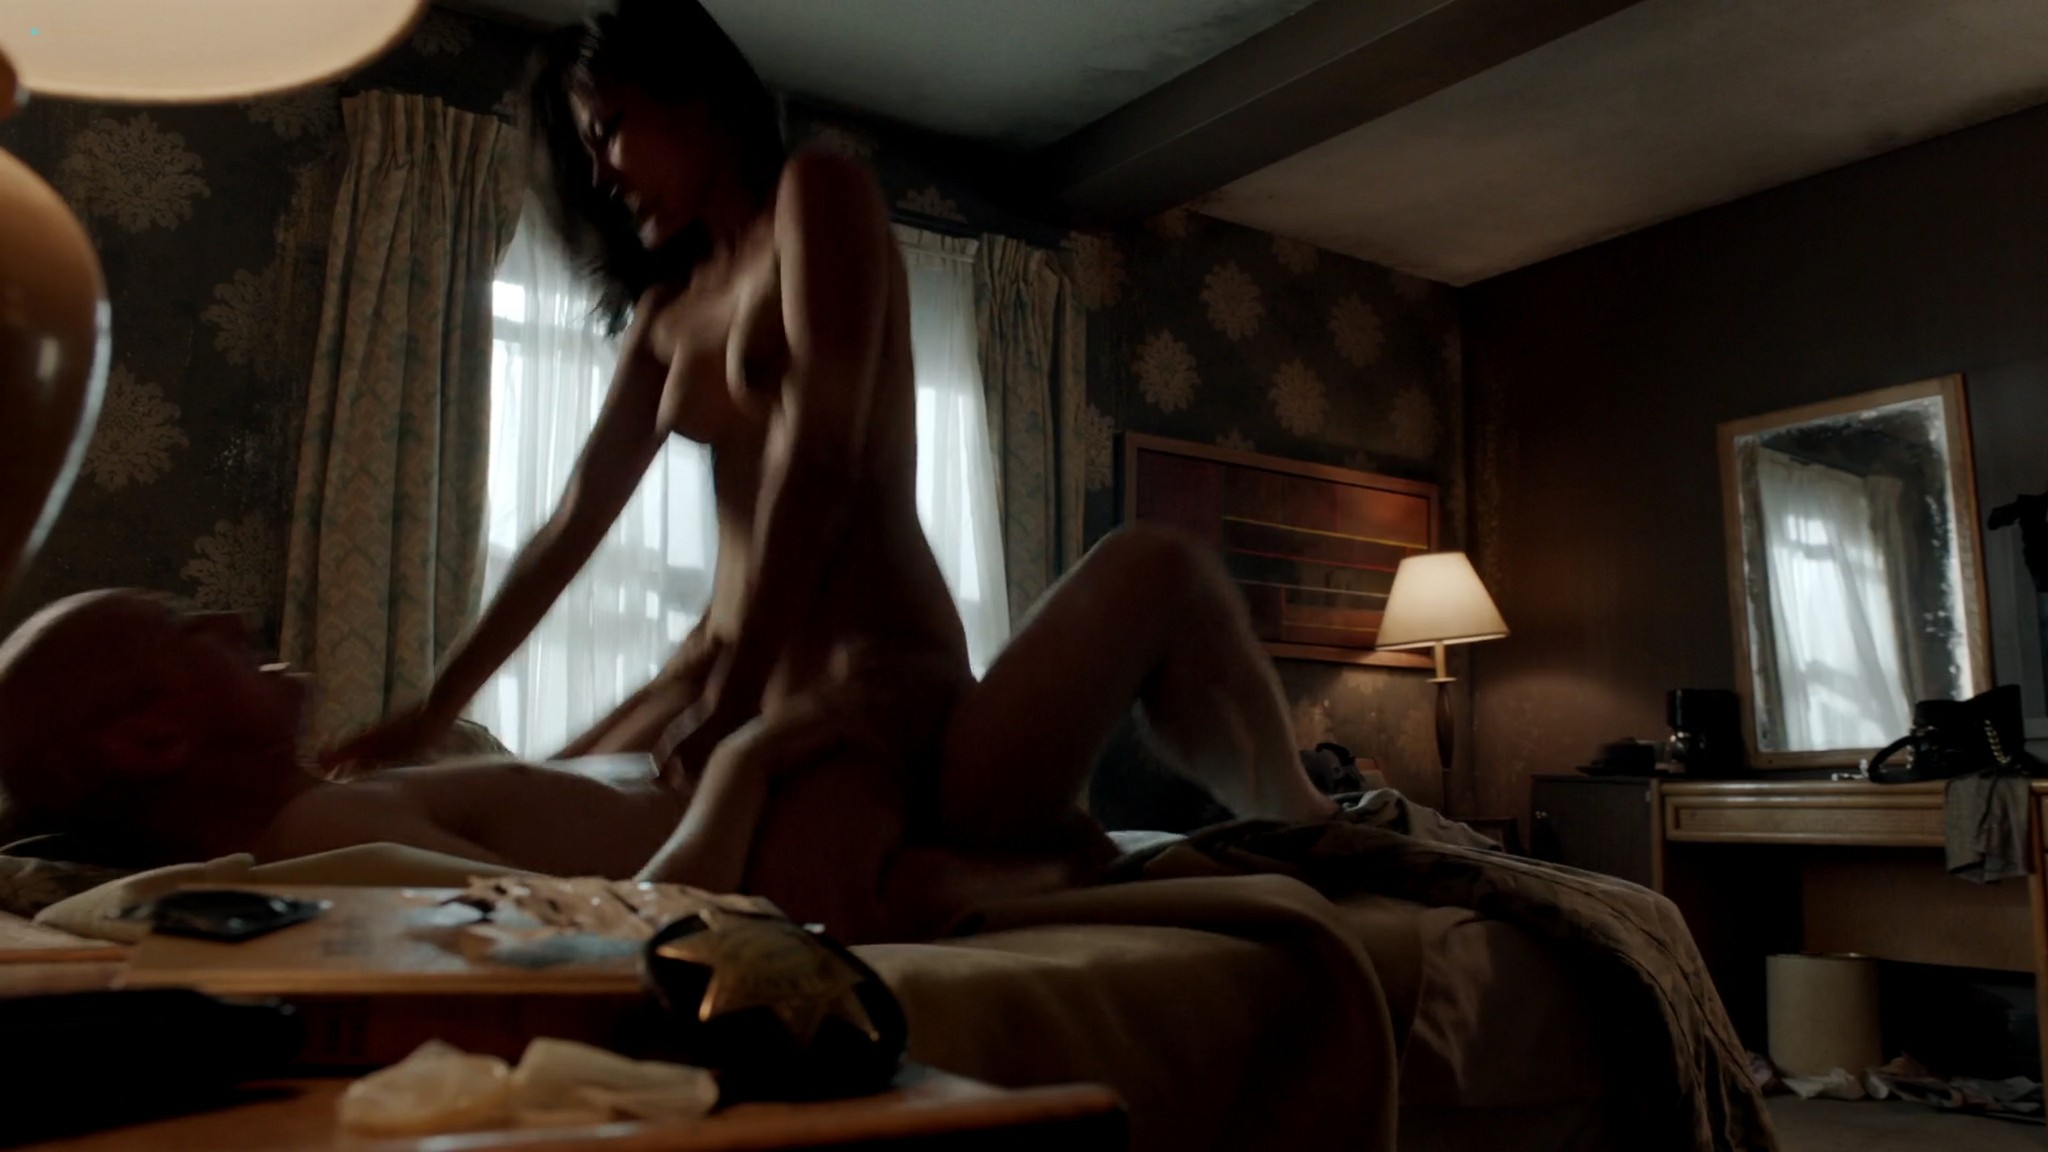 Kira Clavell nude full frontal Leah Gibson nude sex - Rogue (2013) s1e3 HD 1080p (8)